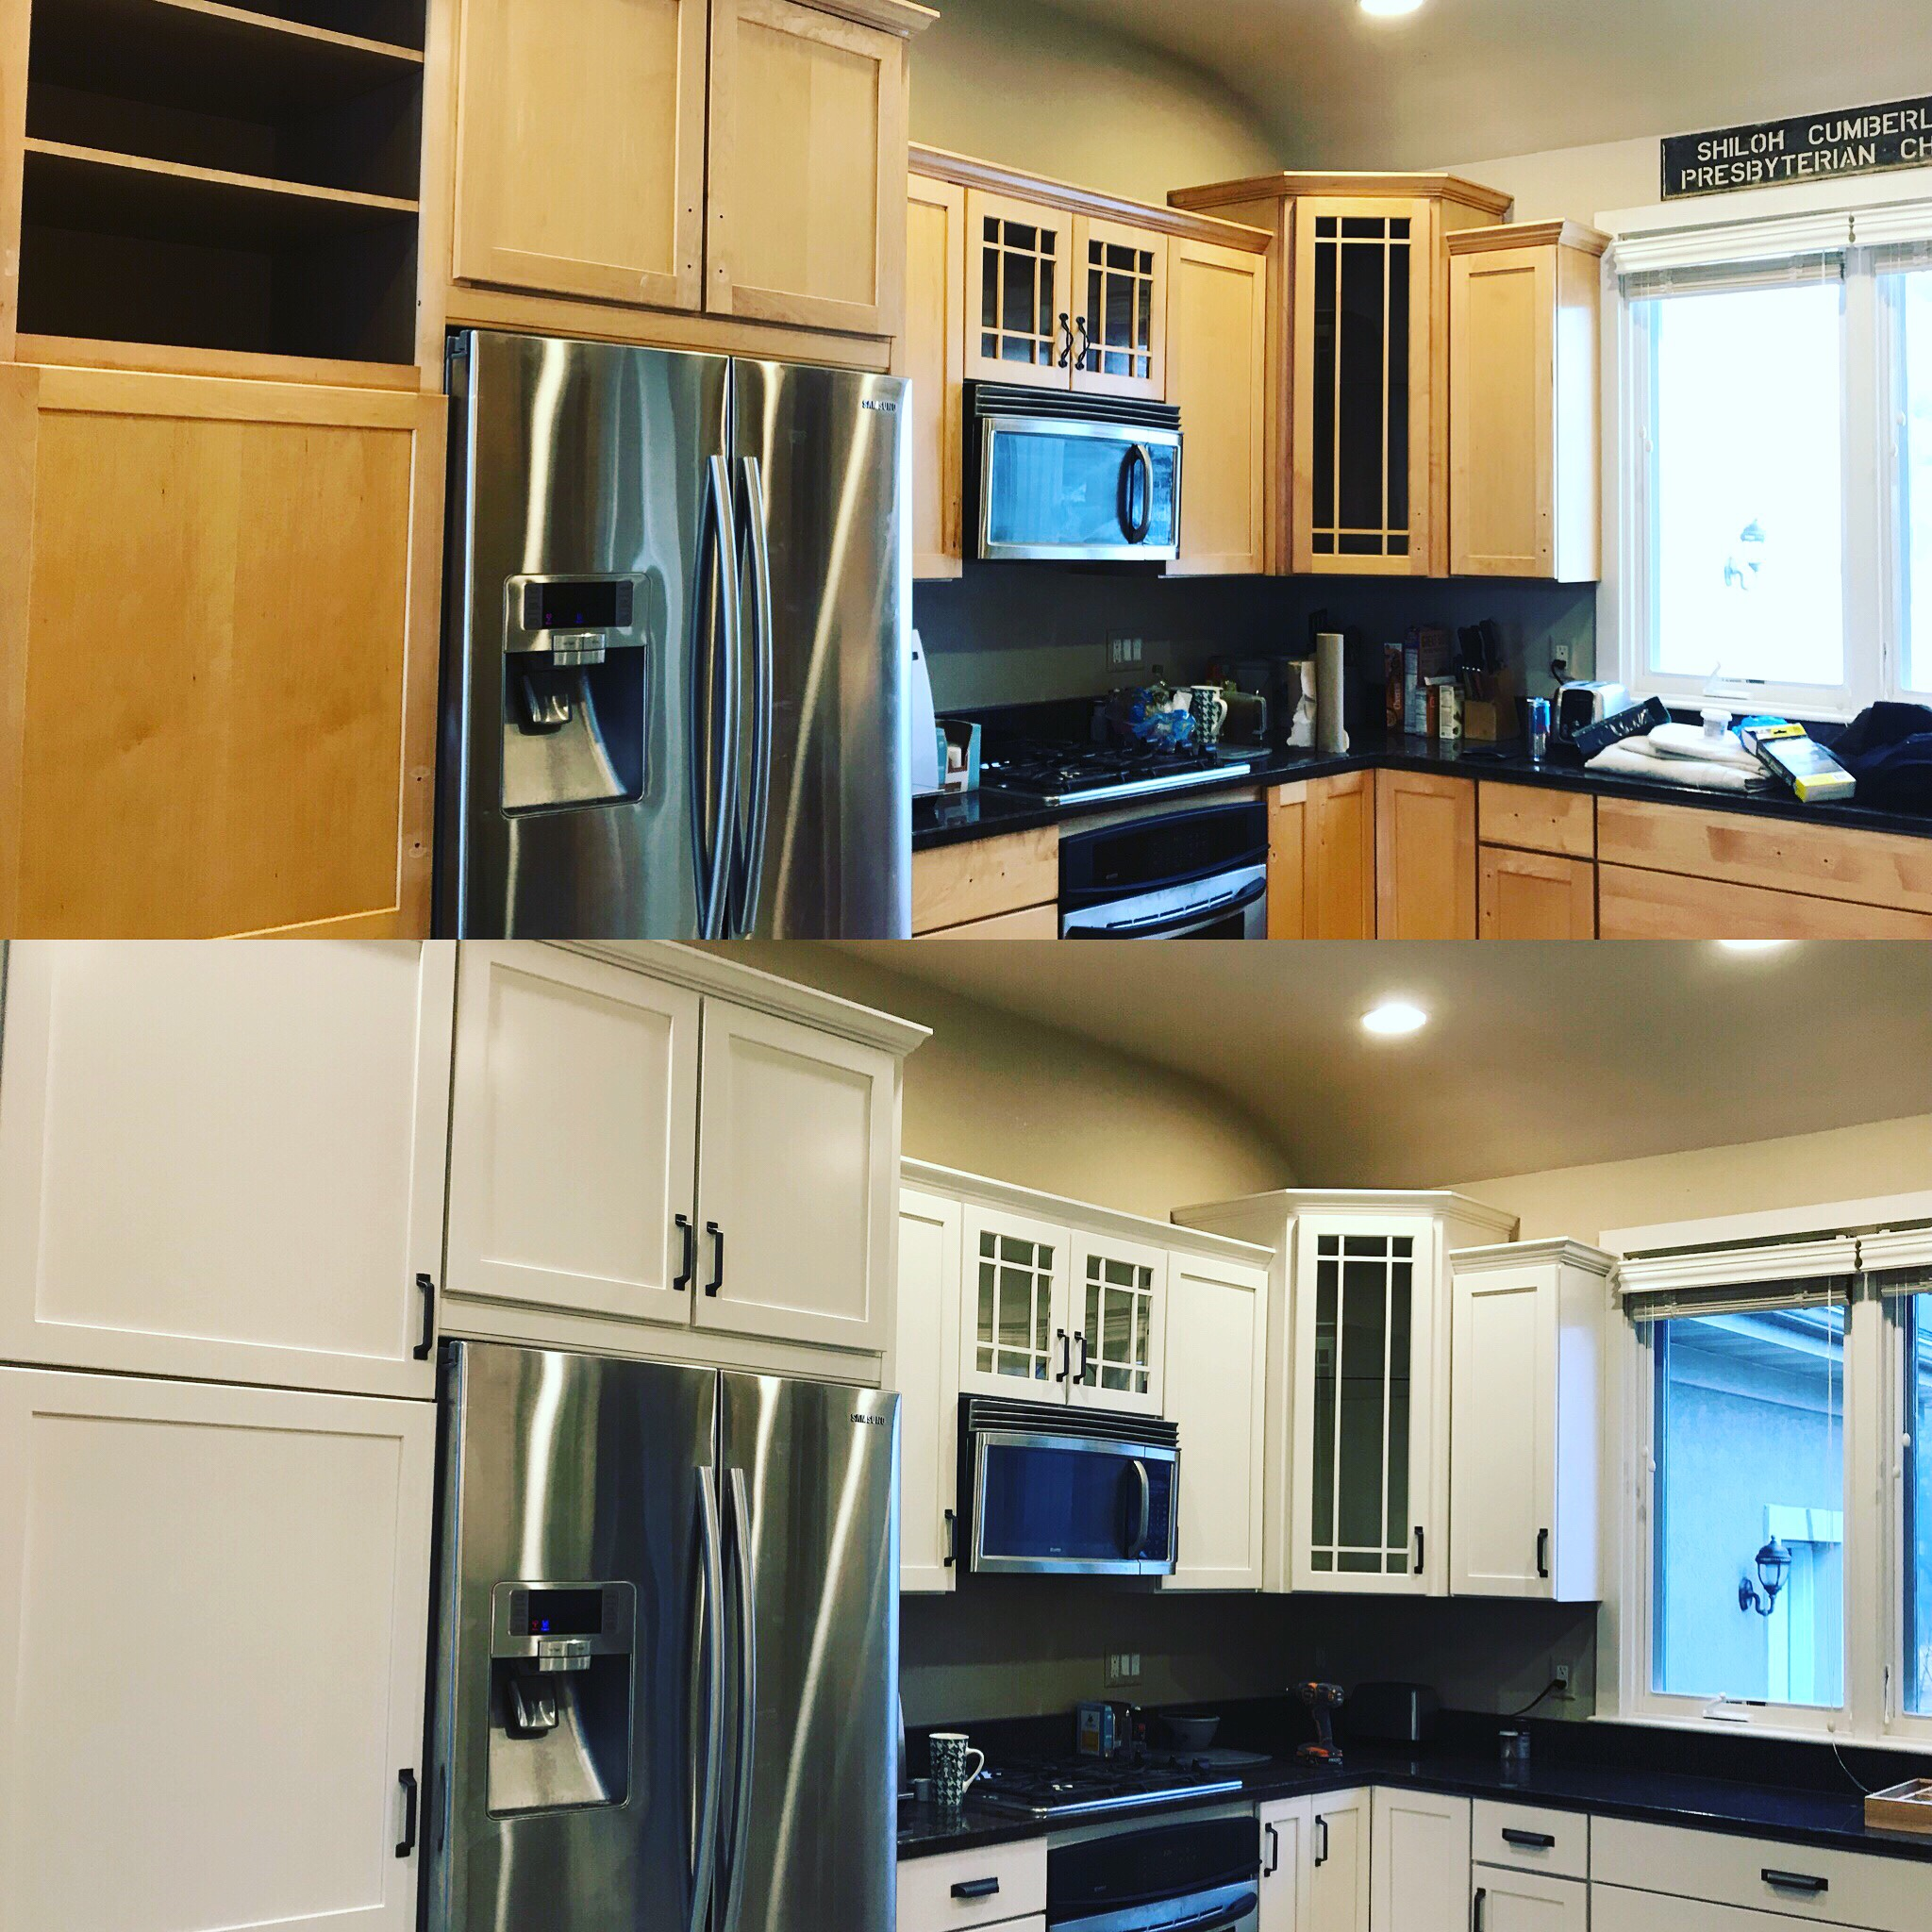 Can You Repaint Kitchen Cabinets: What Products Do We Use On Cabinetry?